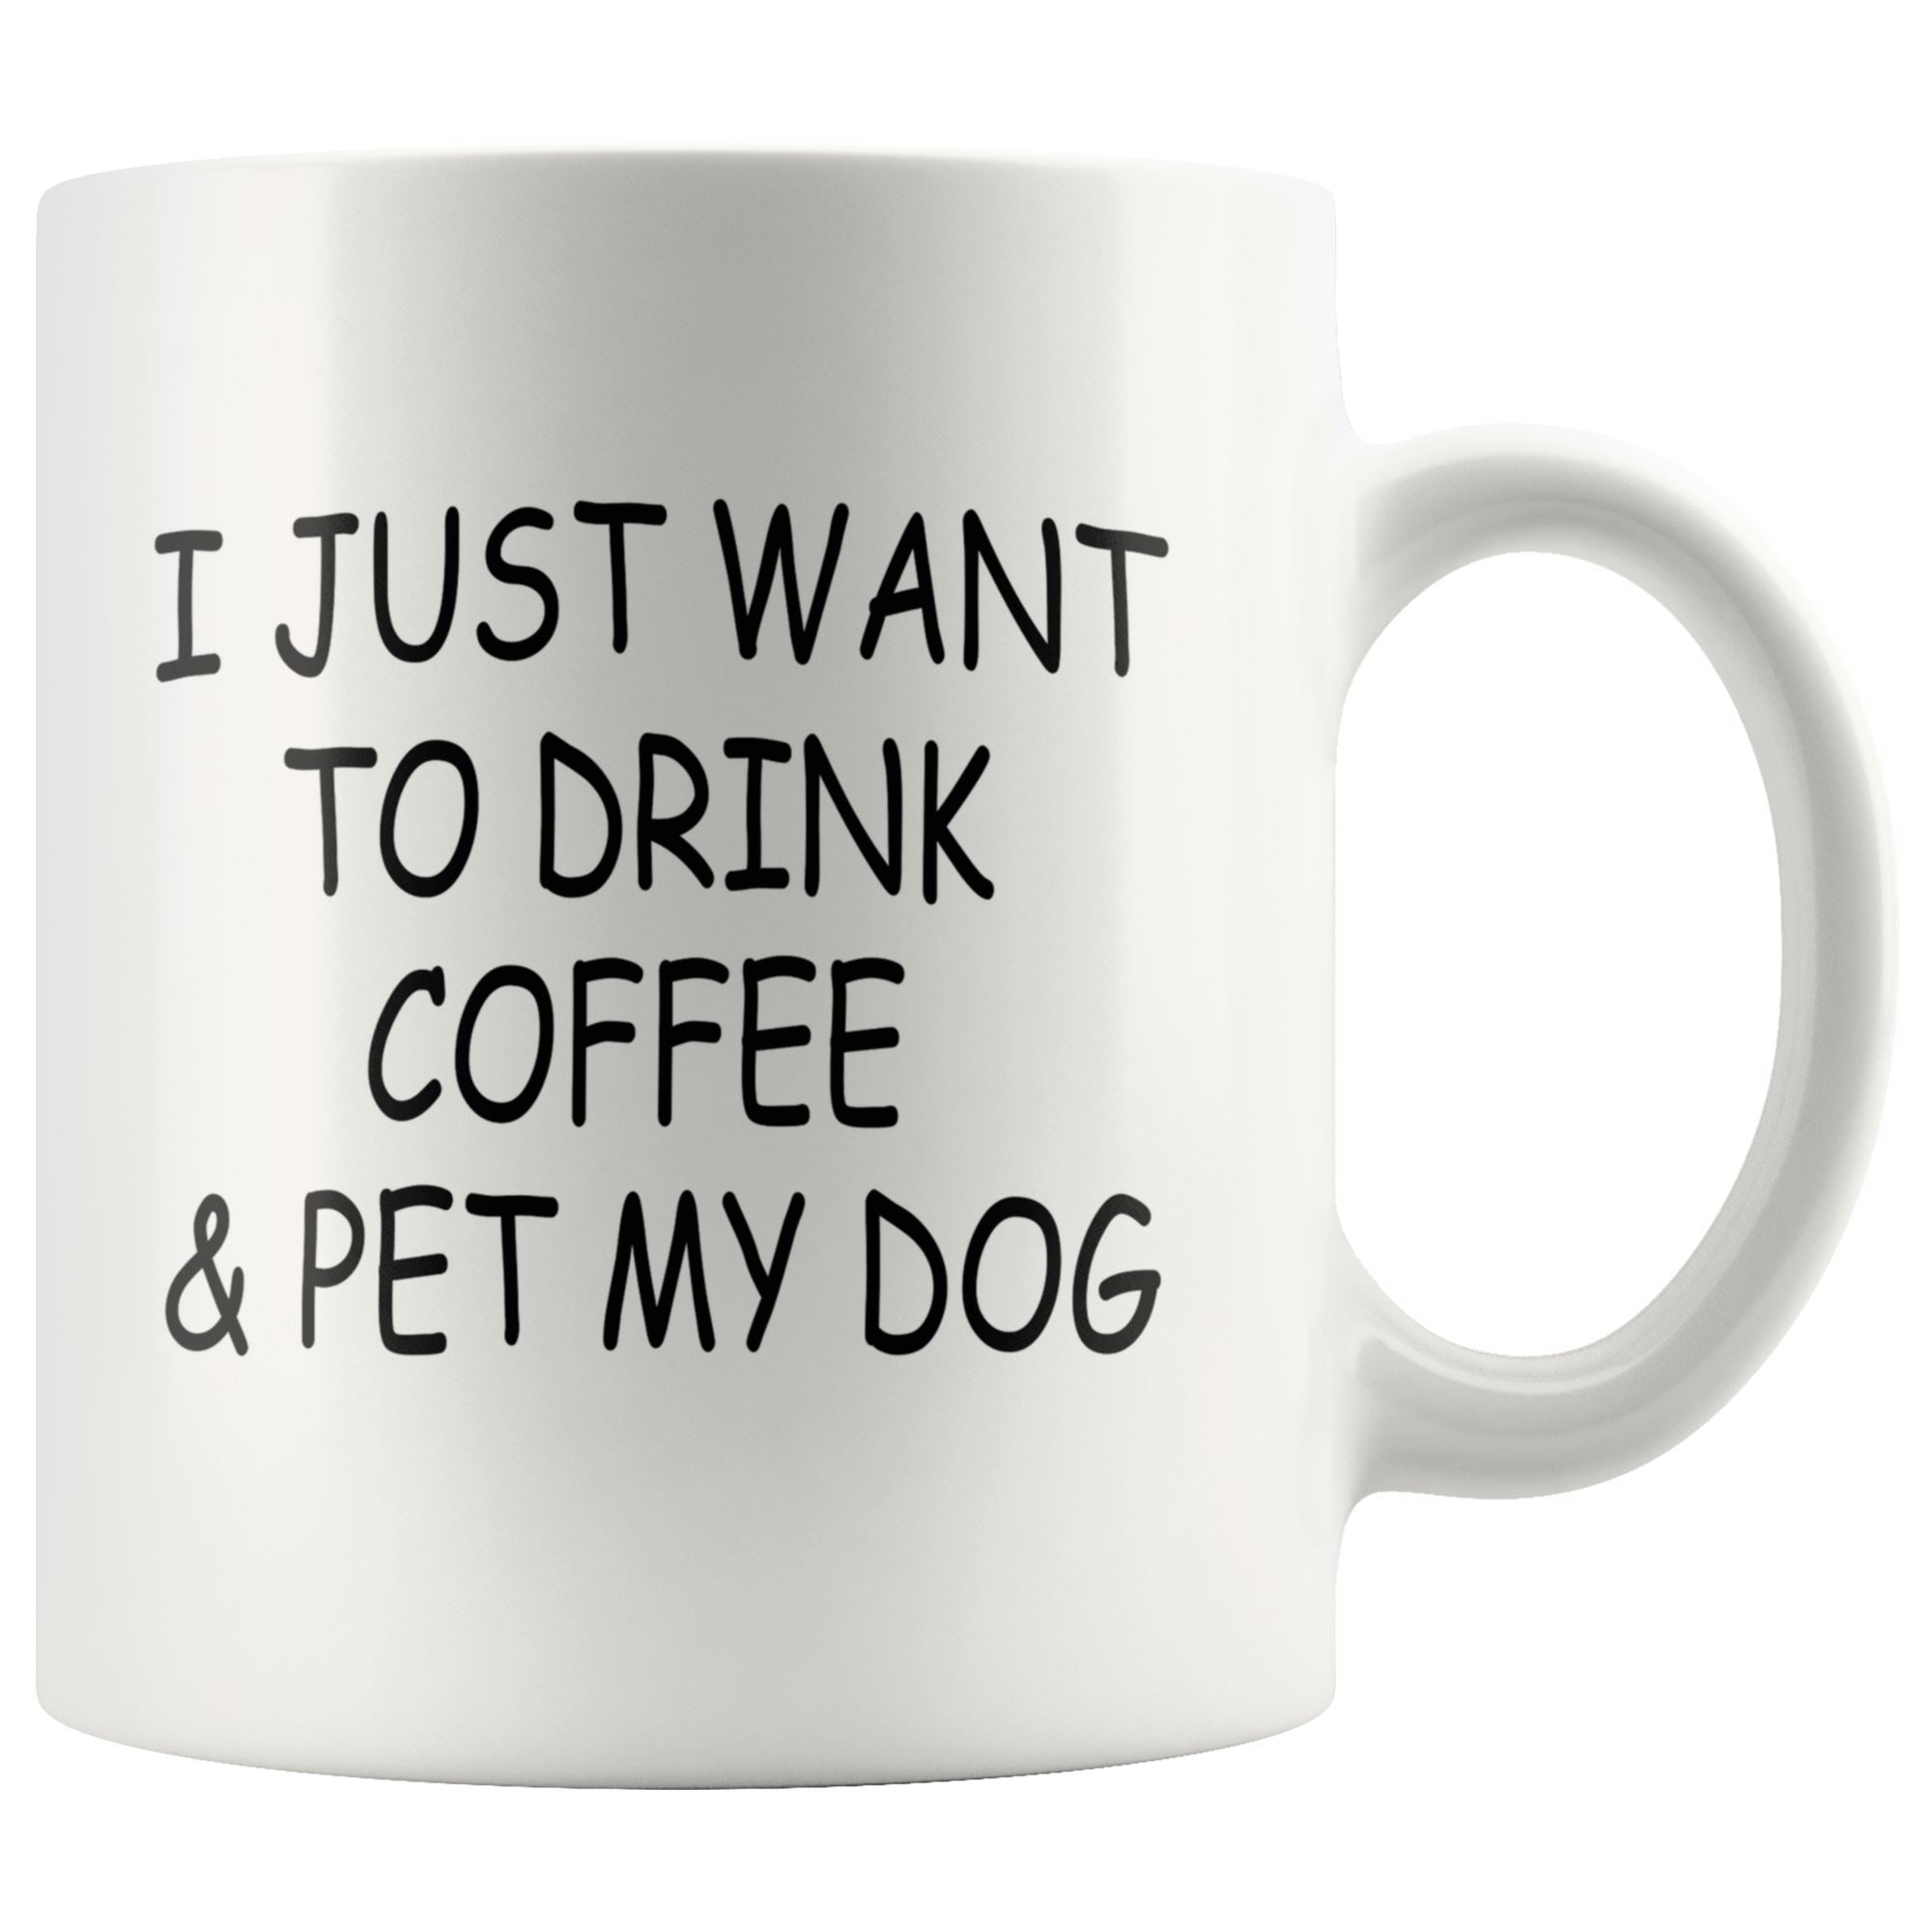 Pet My Dog Coffee Mug Drinkware teelaunch 11oz Mug